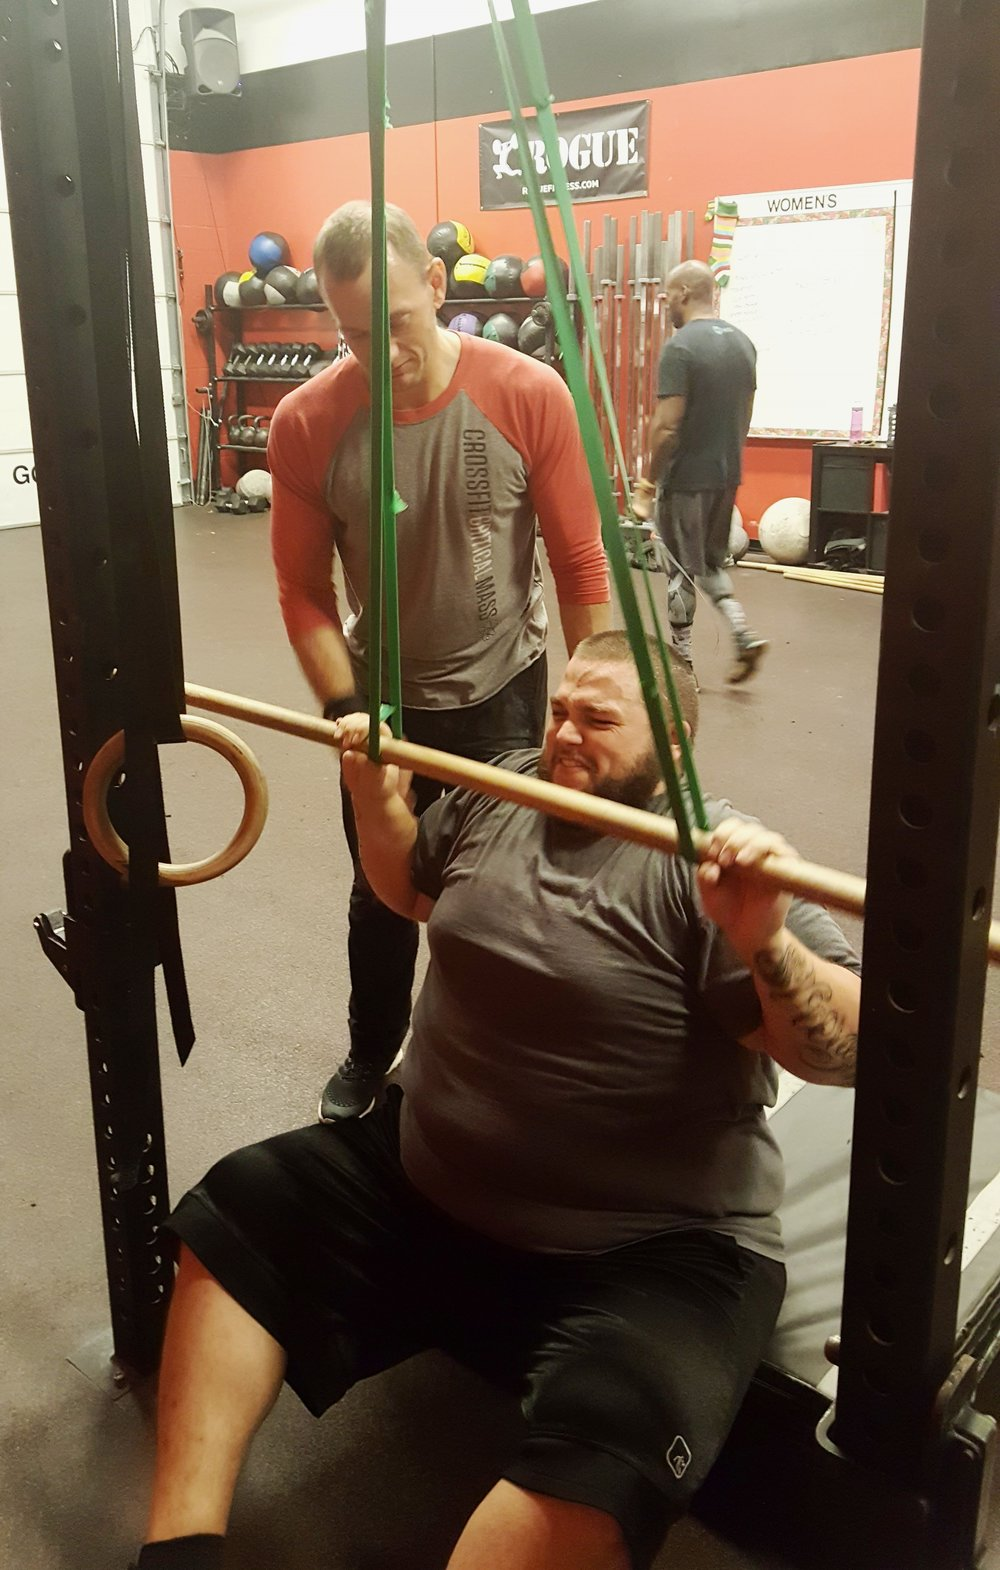 Skills are progressive and are built through basic movements. Helping athletes take the time to build the strength in basic positions allows the coaches at CFCM to help our athletes progress to more complex movements.